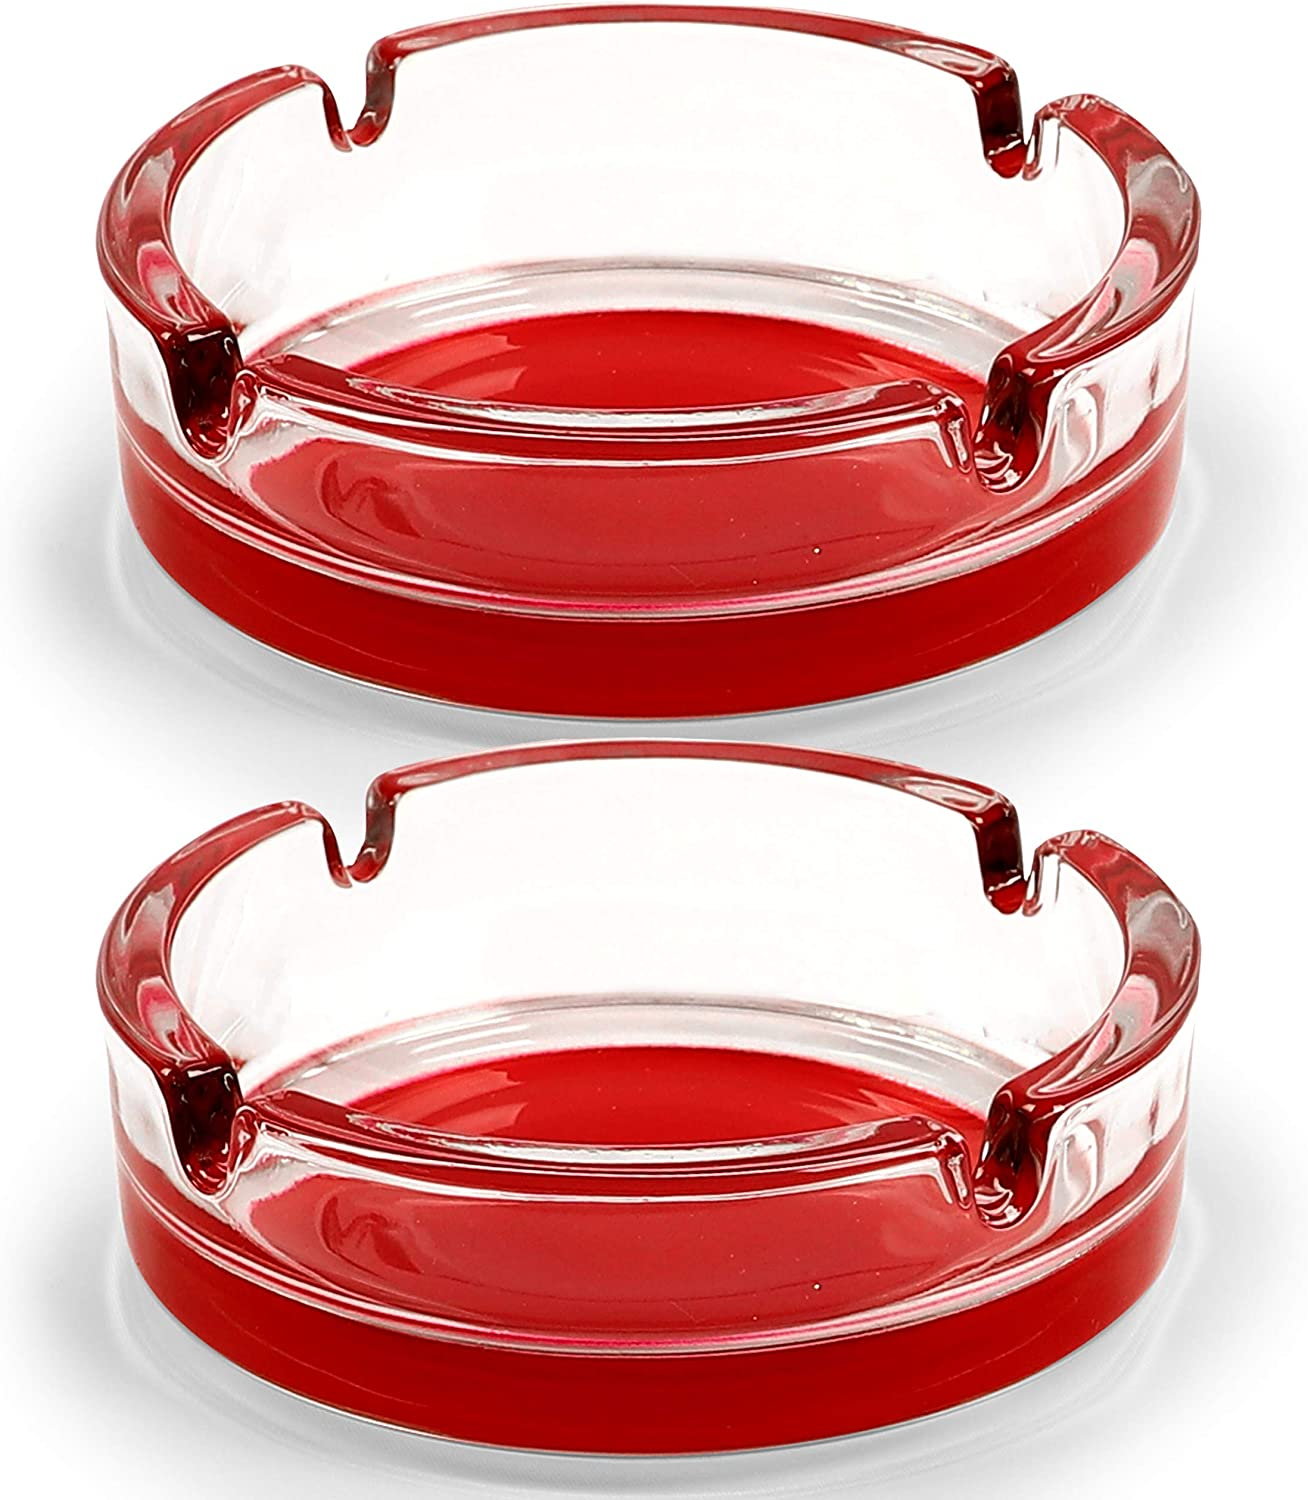 Fargus Glass Ashtrays for Cigarettes, Portable Decorative Modern Ashtray for Home Office Indoor Outdoor Patio Use, Fancy Cute Cool Ash Tray, Pack of 2 (Red-based)